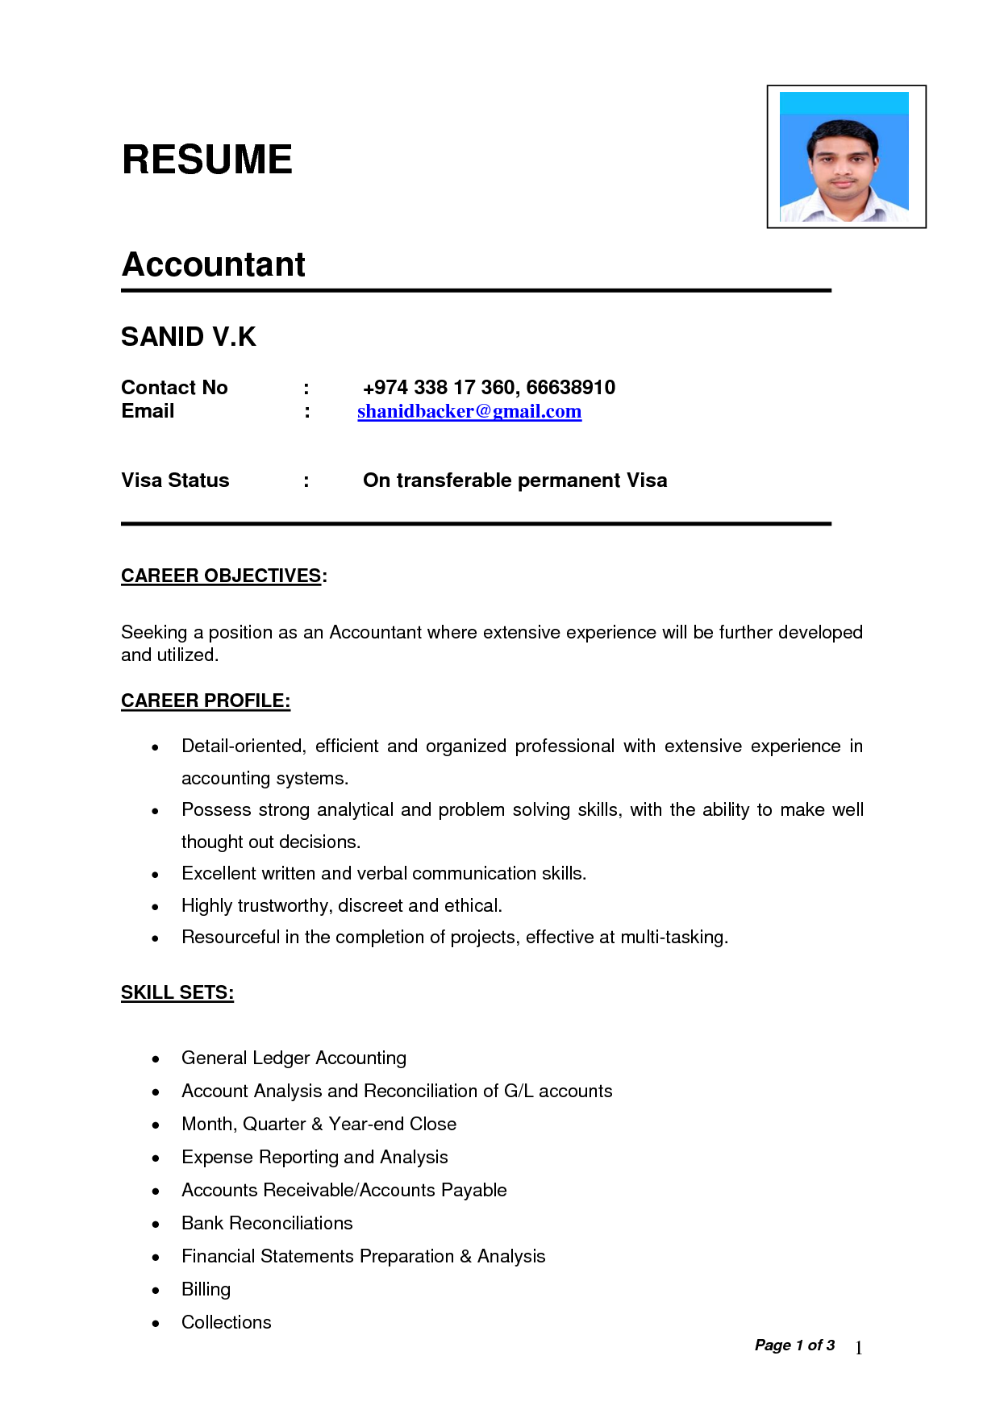 Resume Format India Resume Format Accountant Resume Basic Resume Job Resume Format